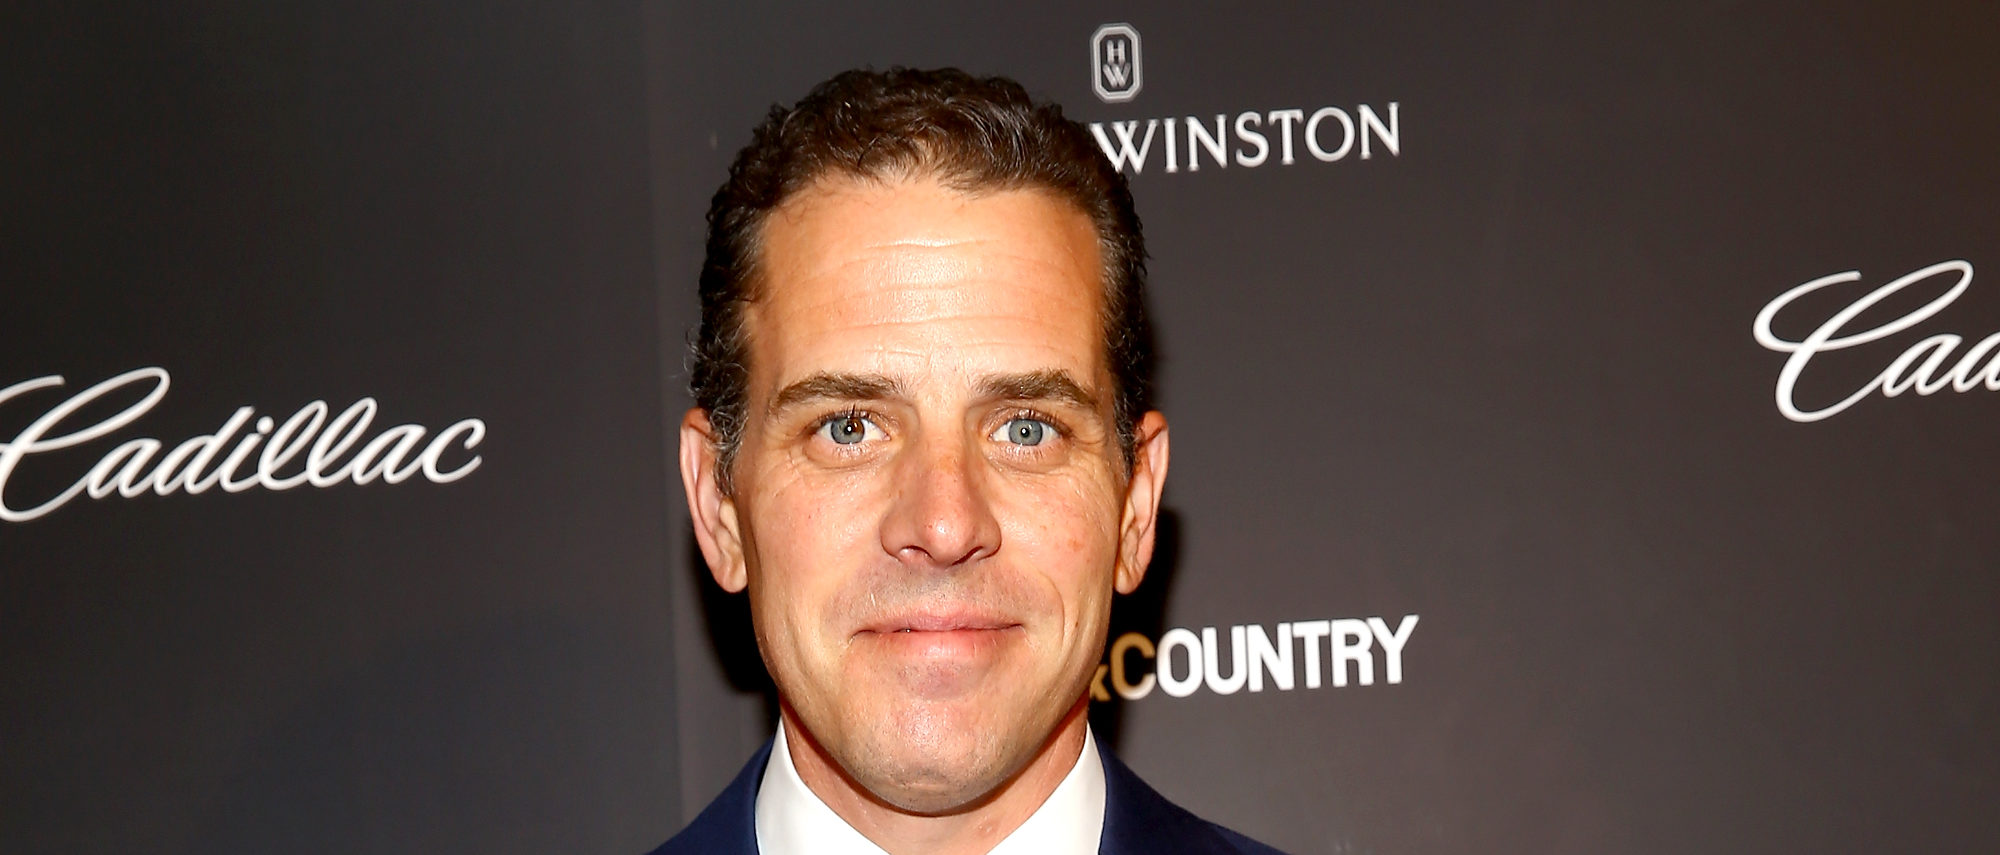 """Hunter Biden attends the T&C Philanthropy Summit with screening of """"Generosity Of Eye"""" at Lincoln Center with Town & Country on May 28, 2014 in New York City. (Astrid Stawiarz/Getty Images for Town & Country)"""